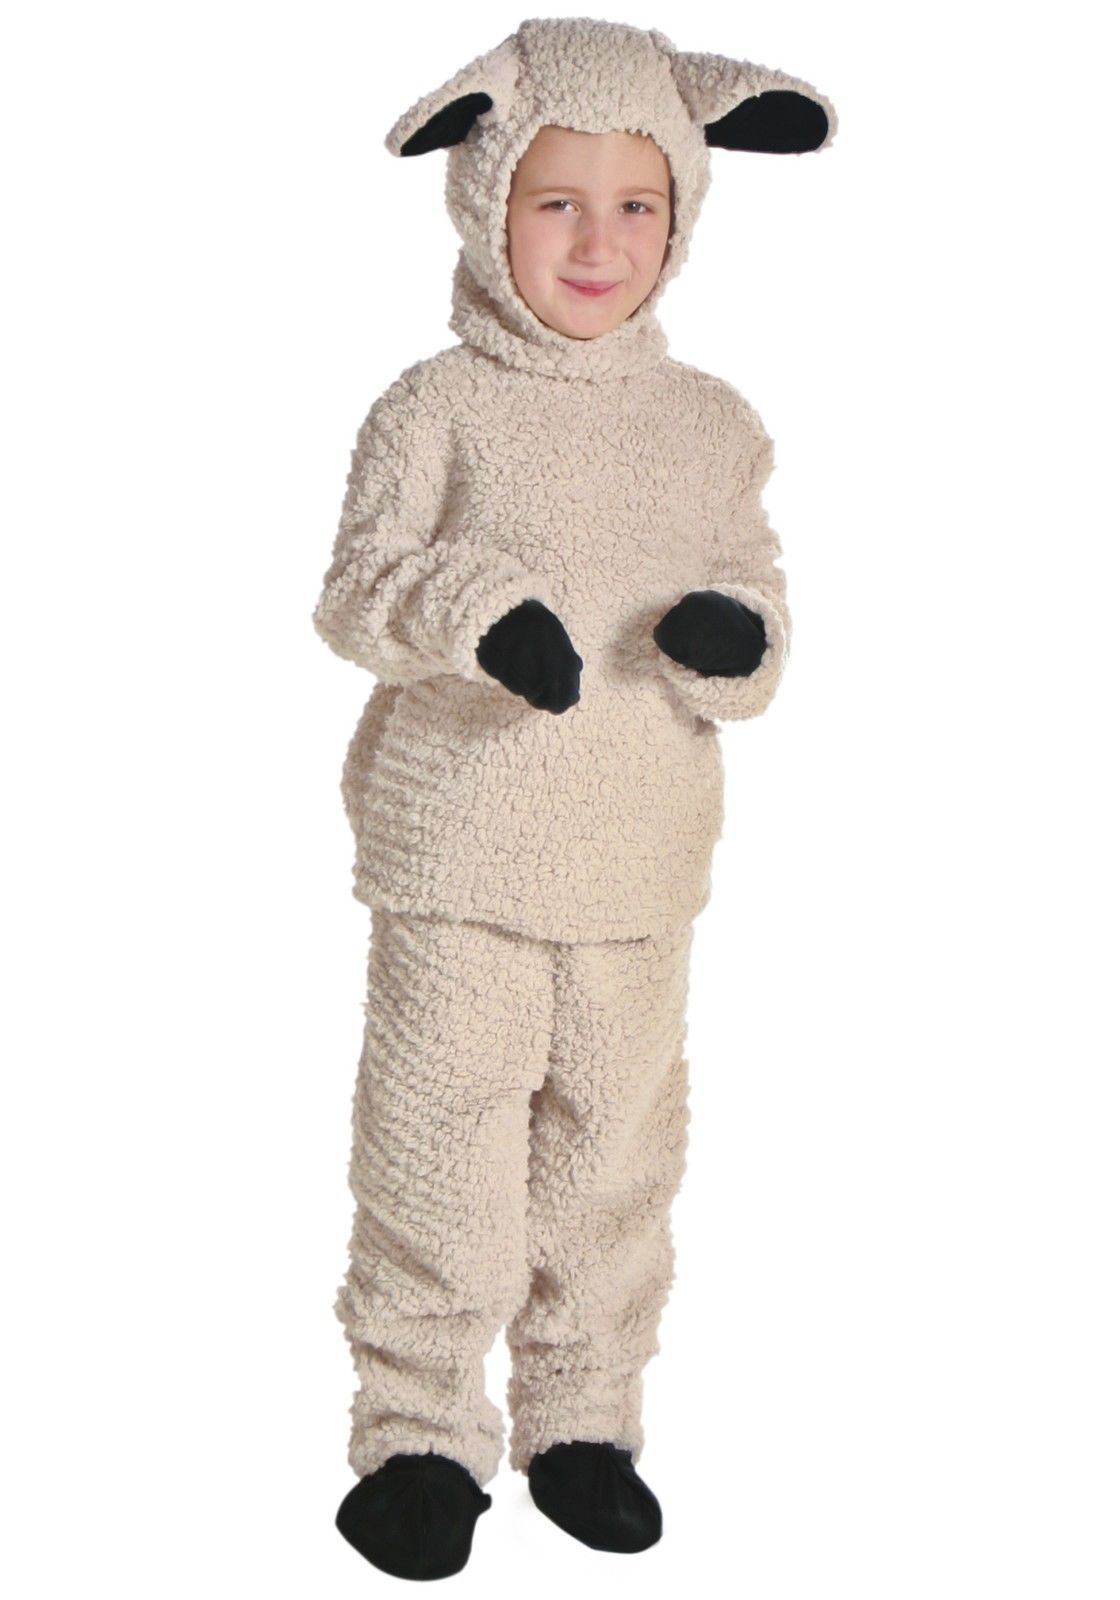 Cheap cosplay costume Buy Quality halloween costume directly from China costumes cute Suppliers Child Kids Cosplay Costumes Cute Sheep Adorable And Cozy ...  sc 1 st  Pinterest & Child Sheep Costume in Clothing Shoes u0026 AccessoriesCostumes ...